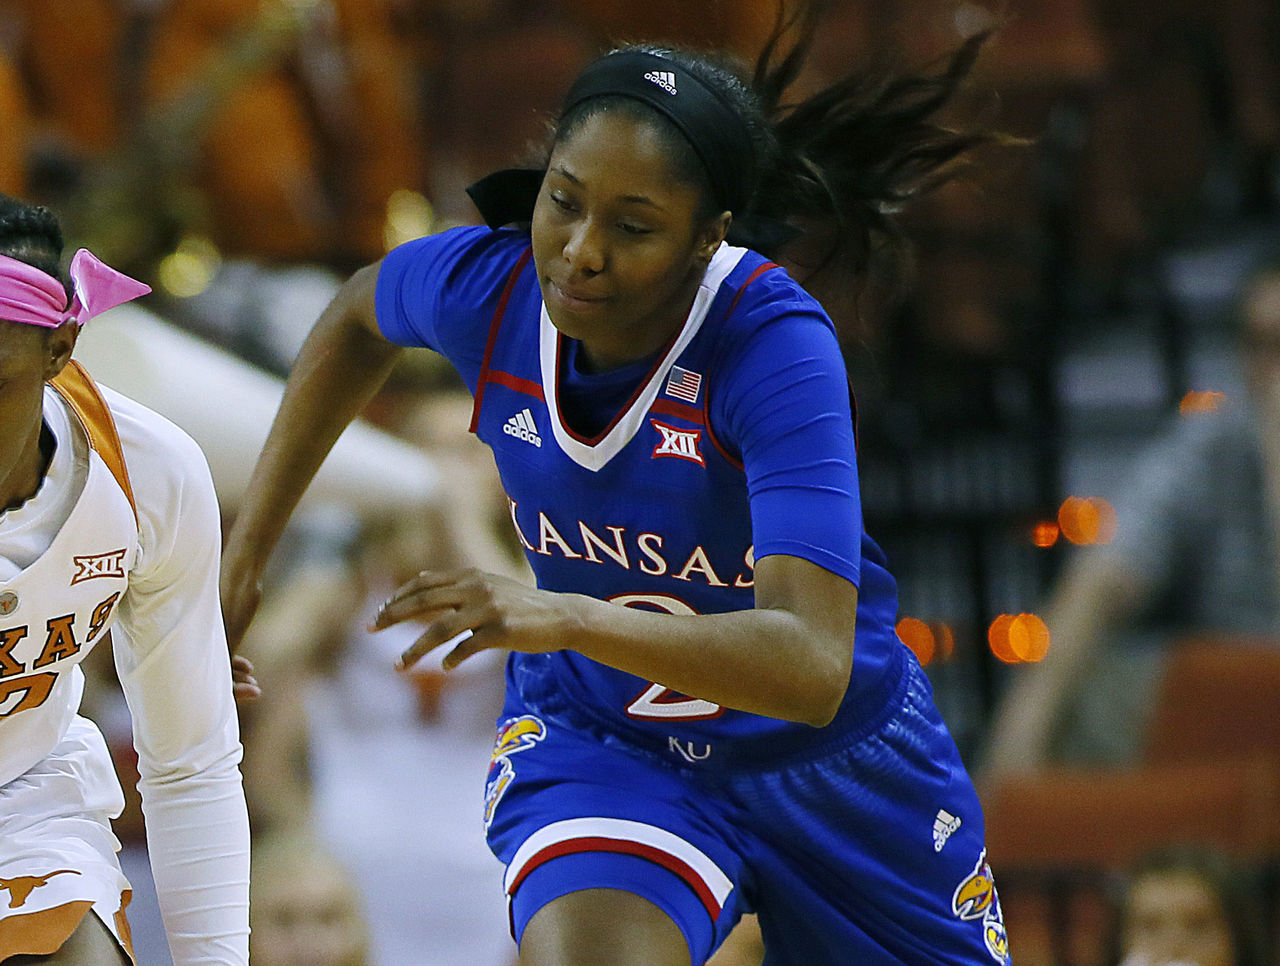 Cropped 2017 02 11t220821z 901964753 nocid rtrmadp 3 ncaa womens basketball kansas at texas